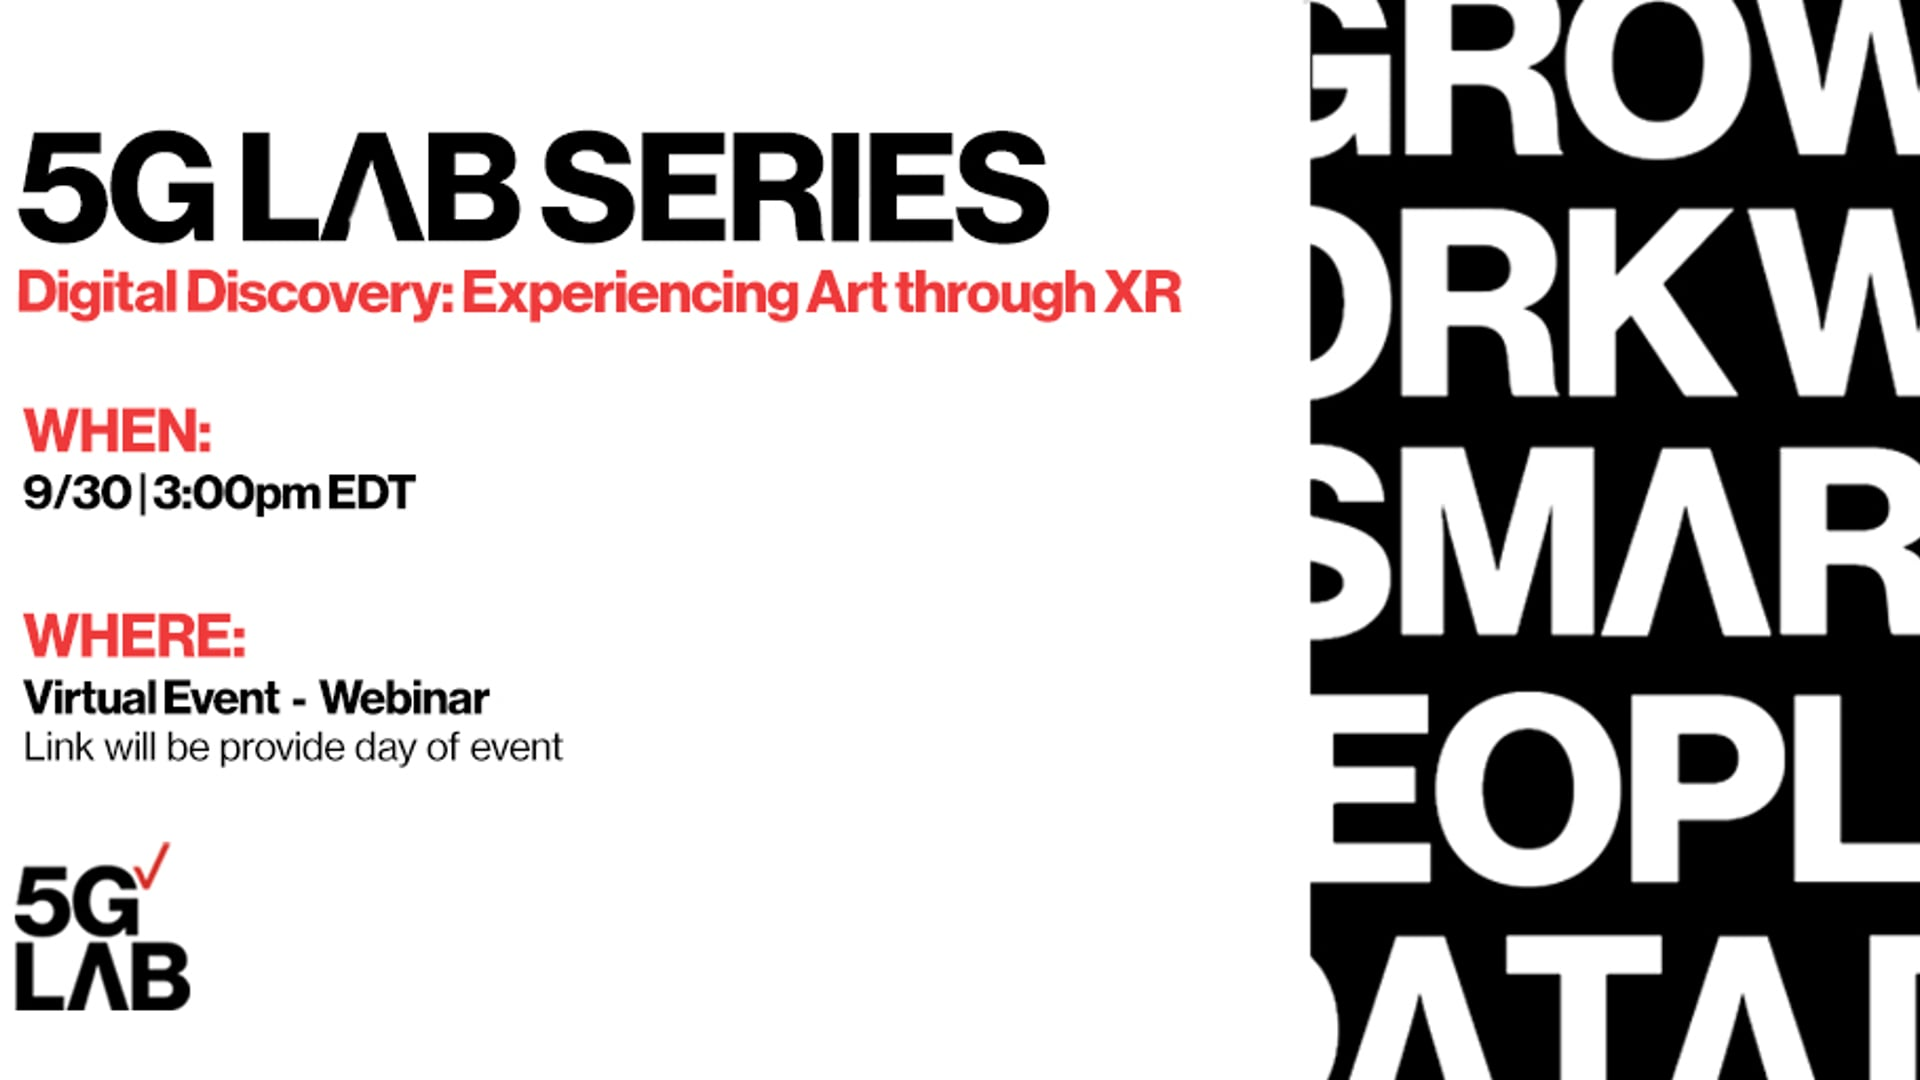 Digital Discovery- Experiencing Art through XR